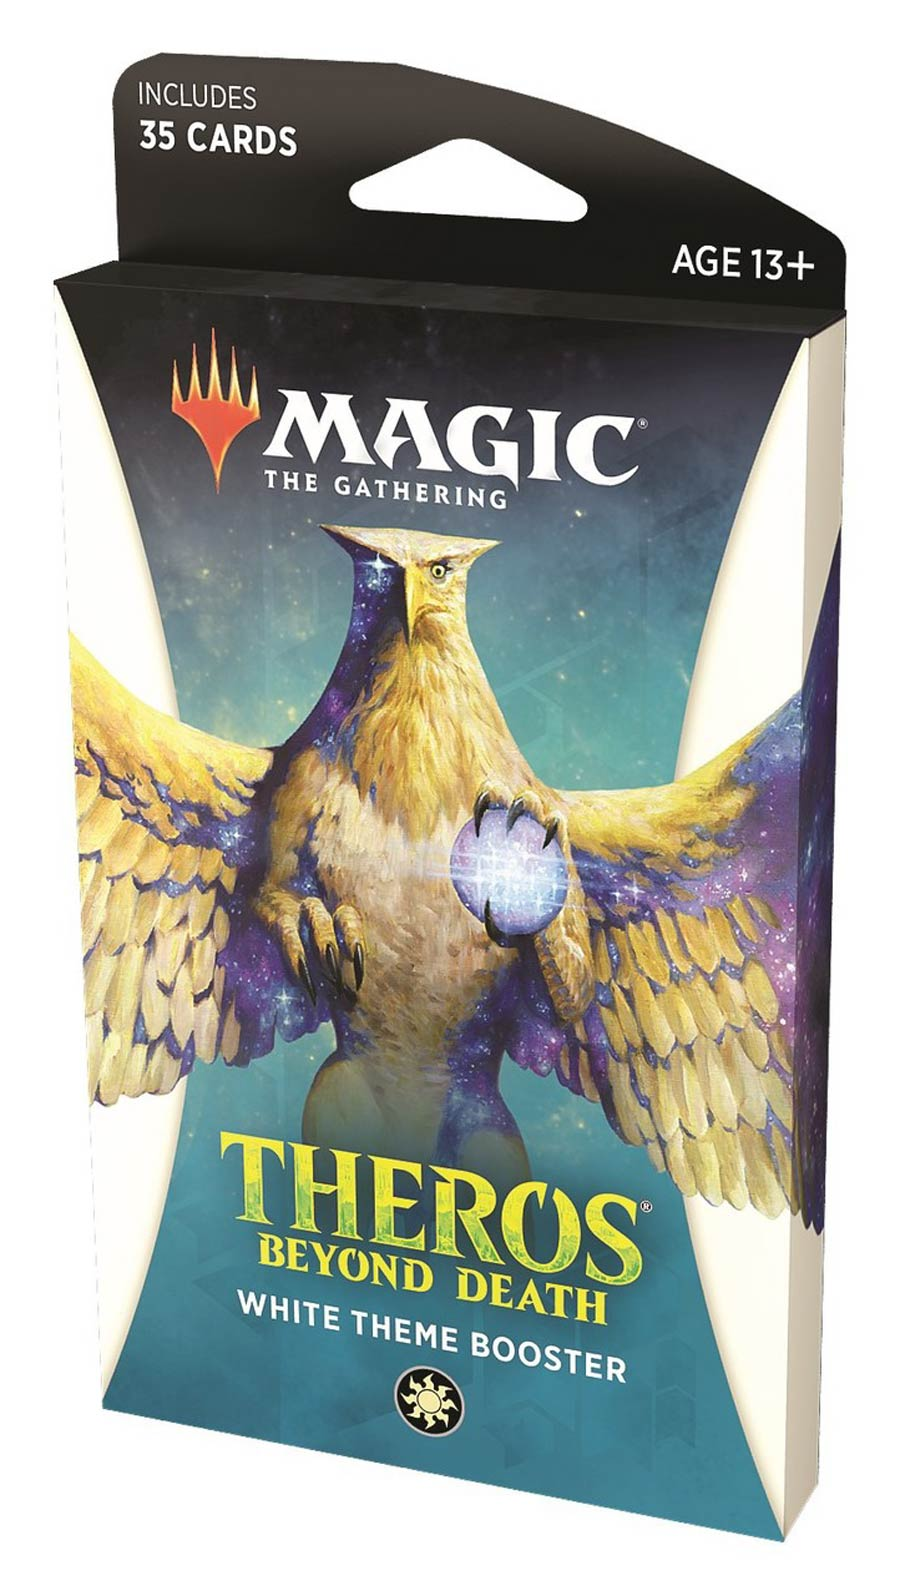 Magic The Gathering Theros Beyond Death Theme Booster Pack - White